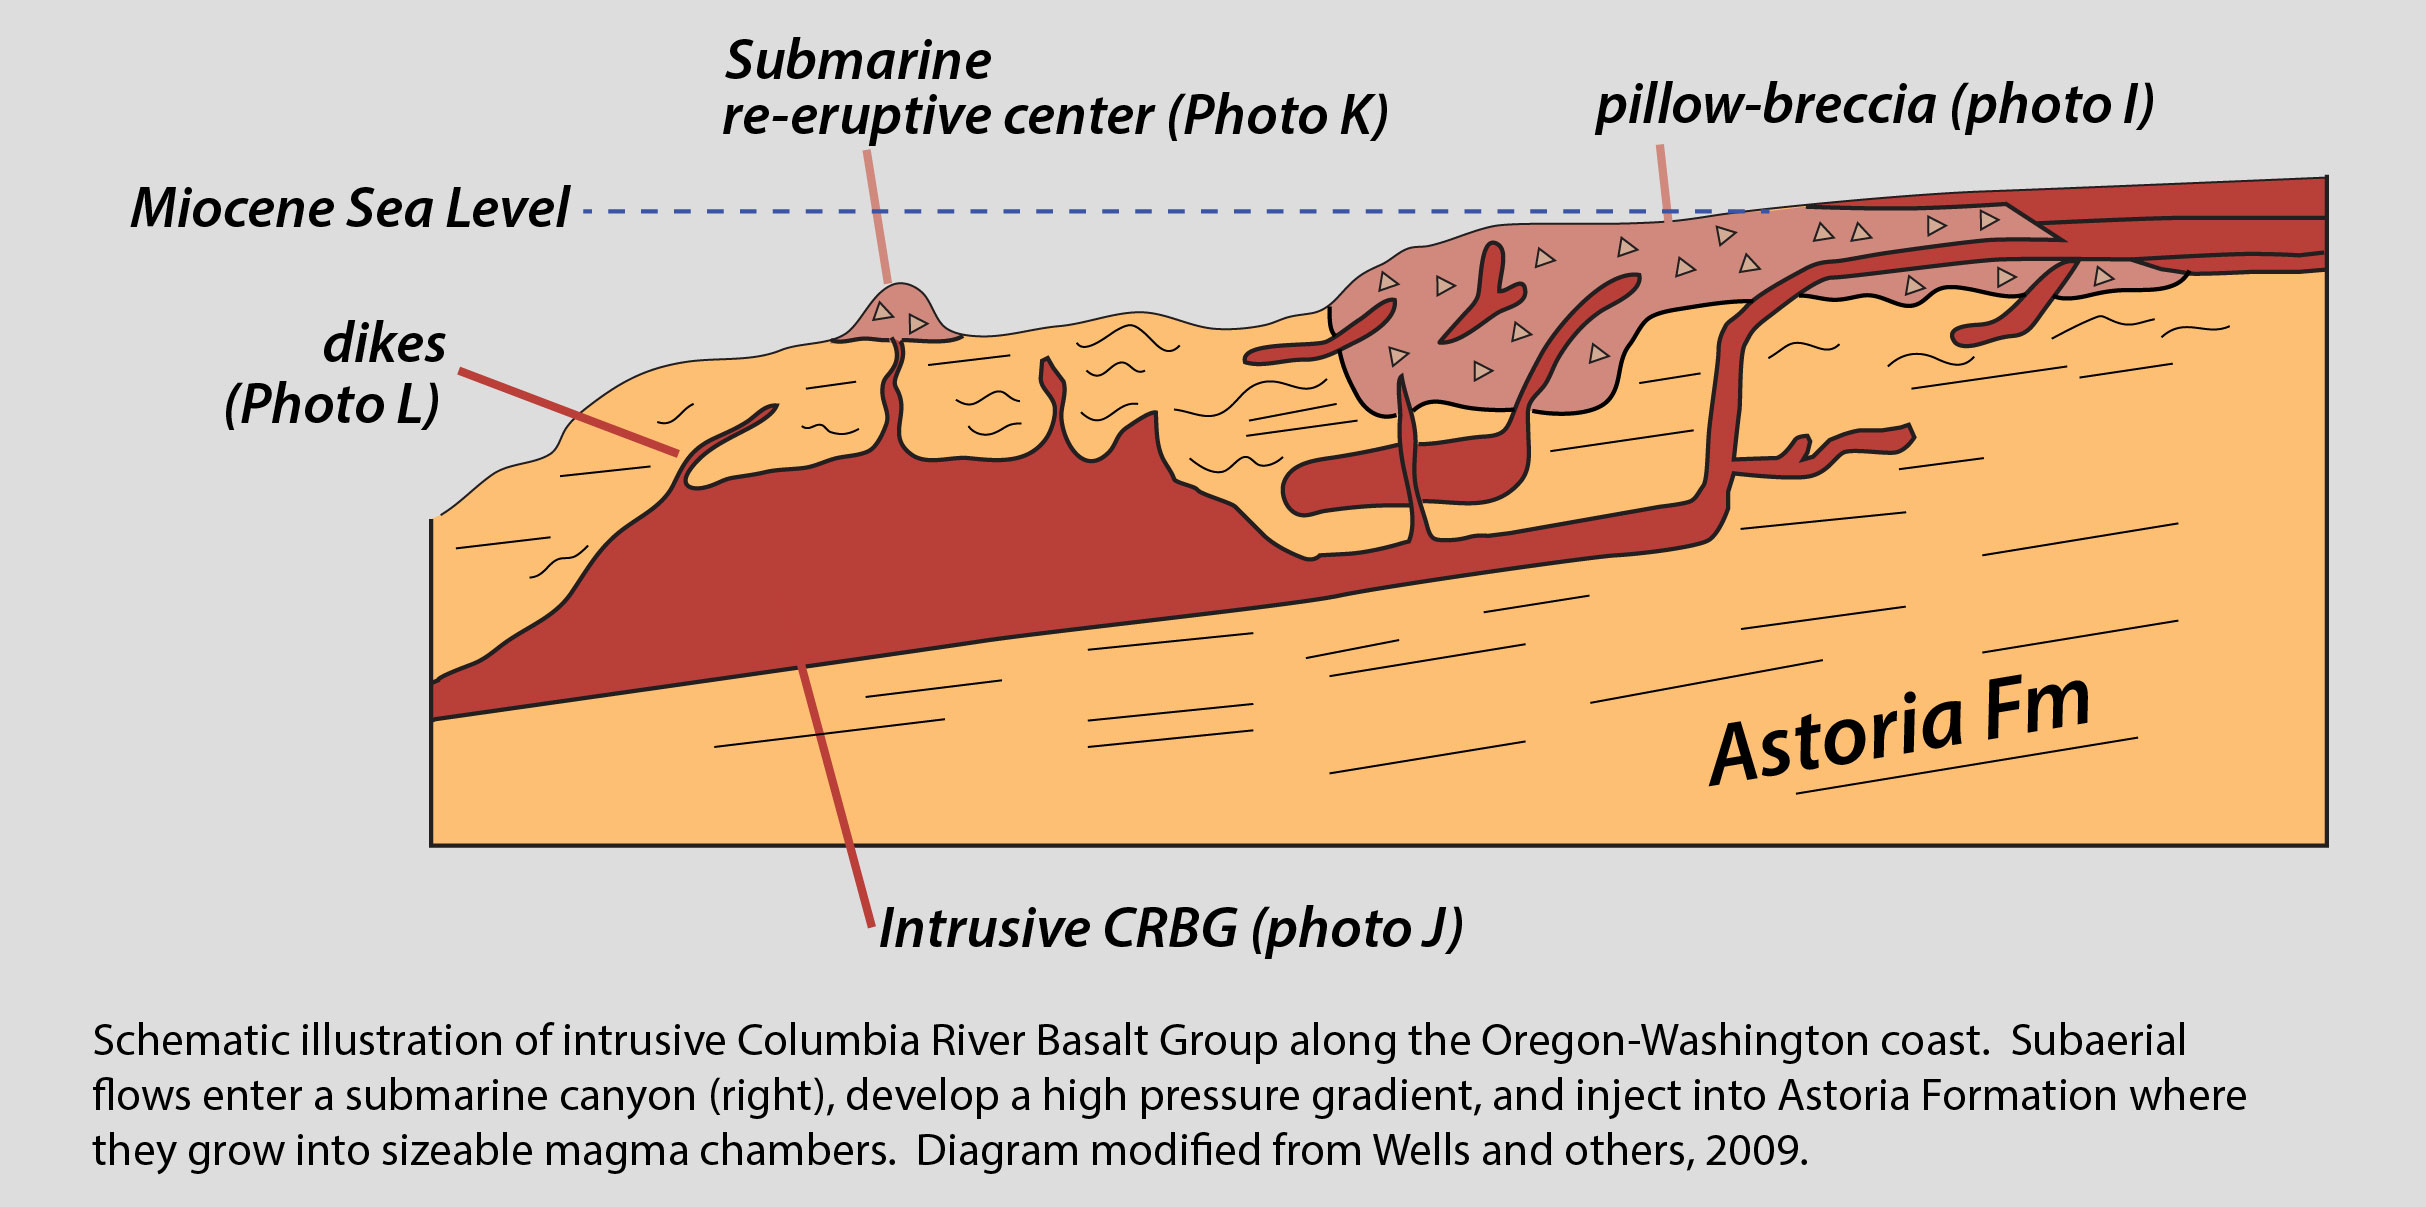 volcanic fracture diagram triumph tr6 alternator wiring geologictimepics geology and geologic time through